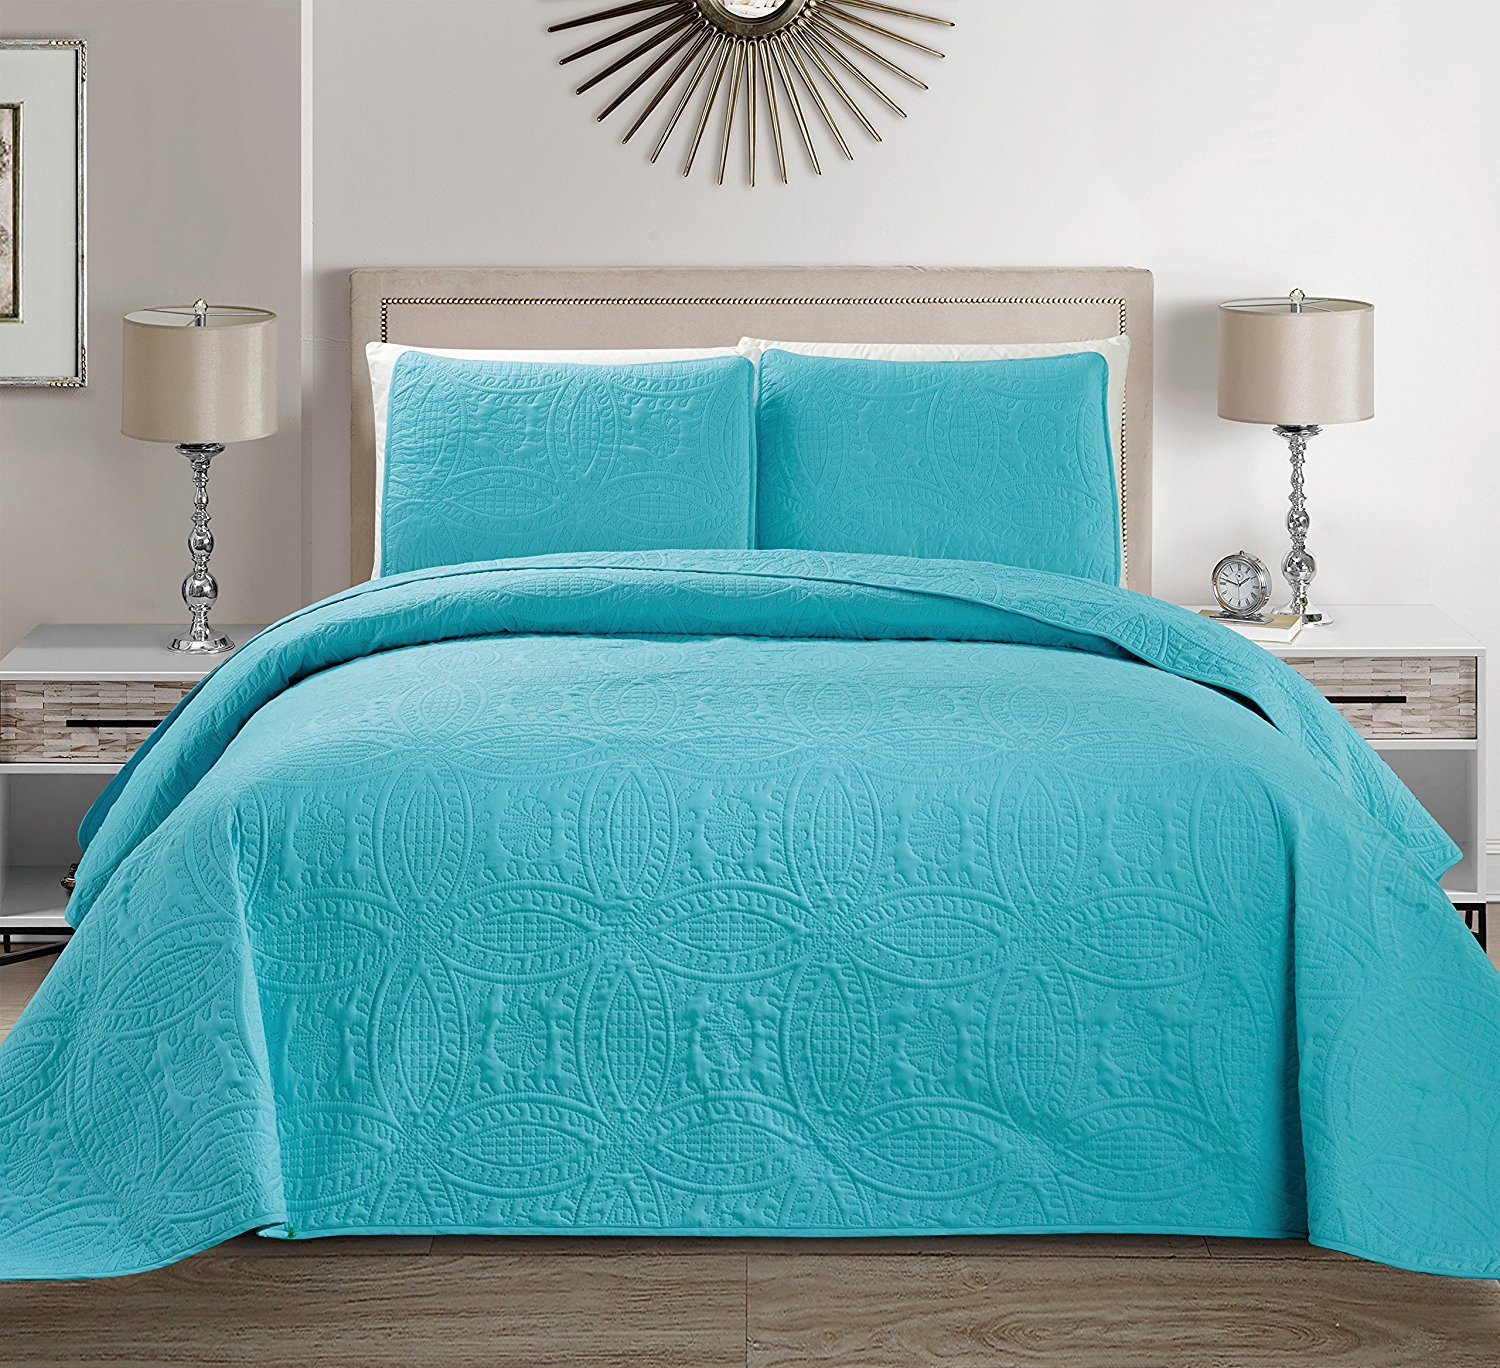 """Mk Collection 3 pc King/California King Solid Embossed Bedspread Bed-cover Over Size Baby Blue/Turquoise 118"""" X 106"""" New"""